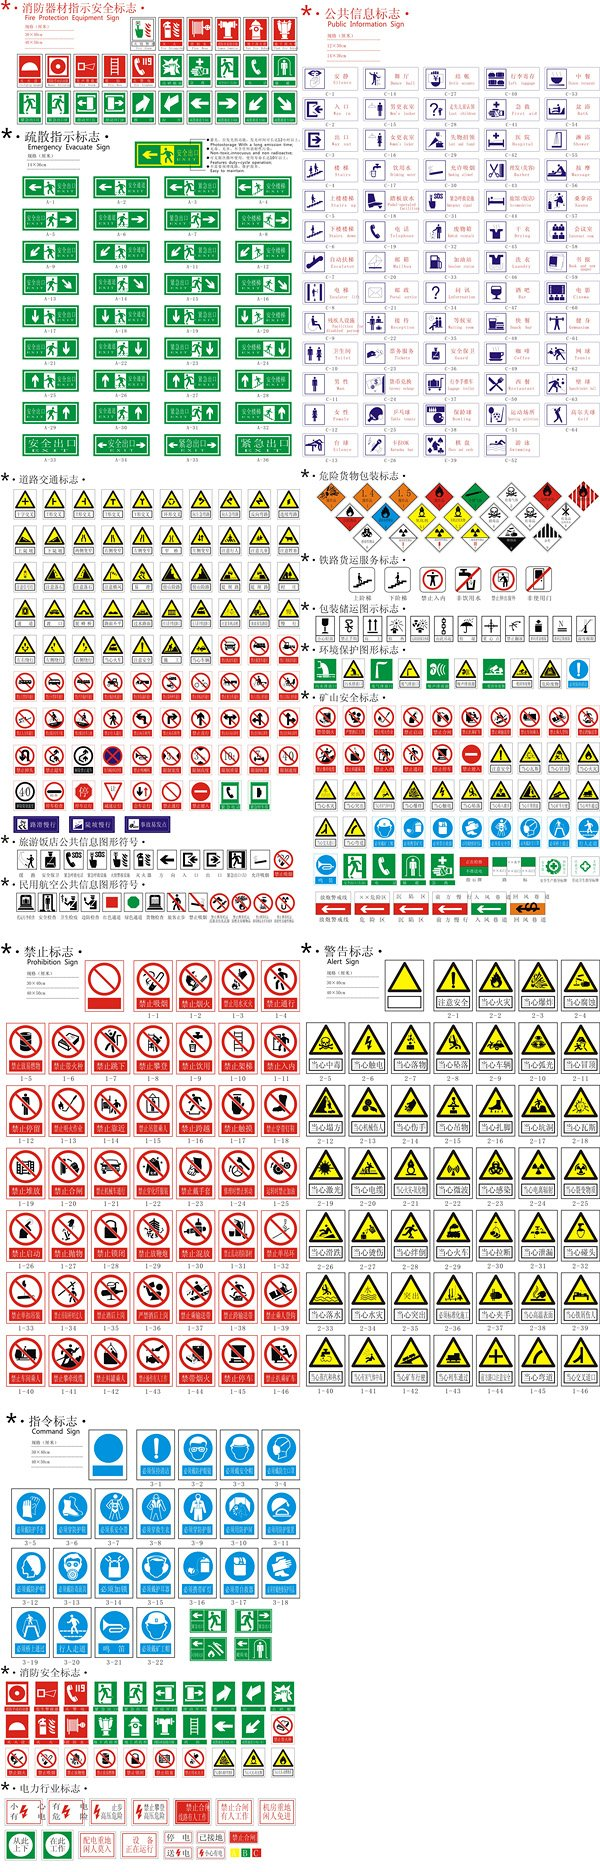 Safety, warning, prohibition of all kinds of signs vector ma